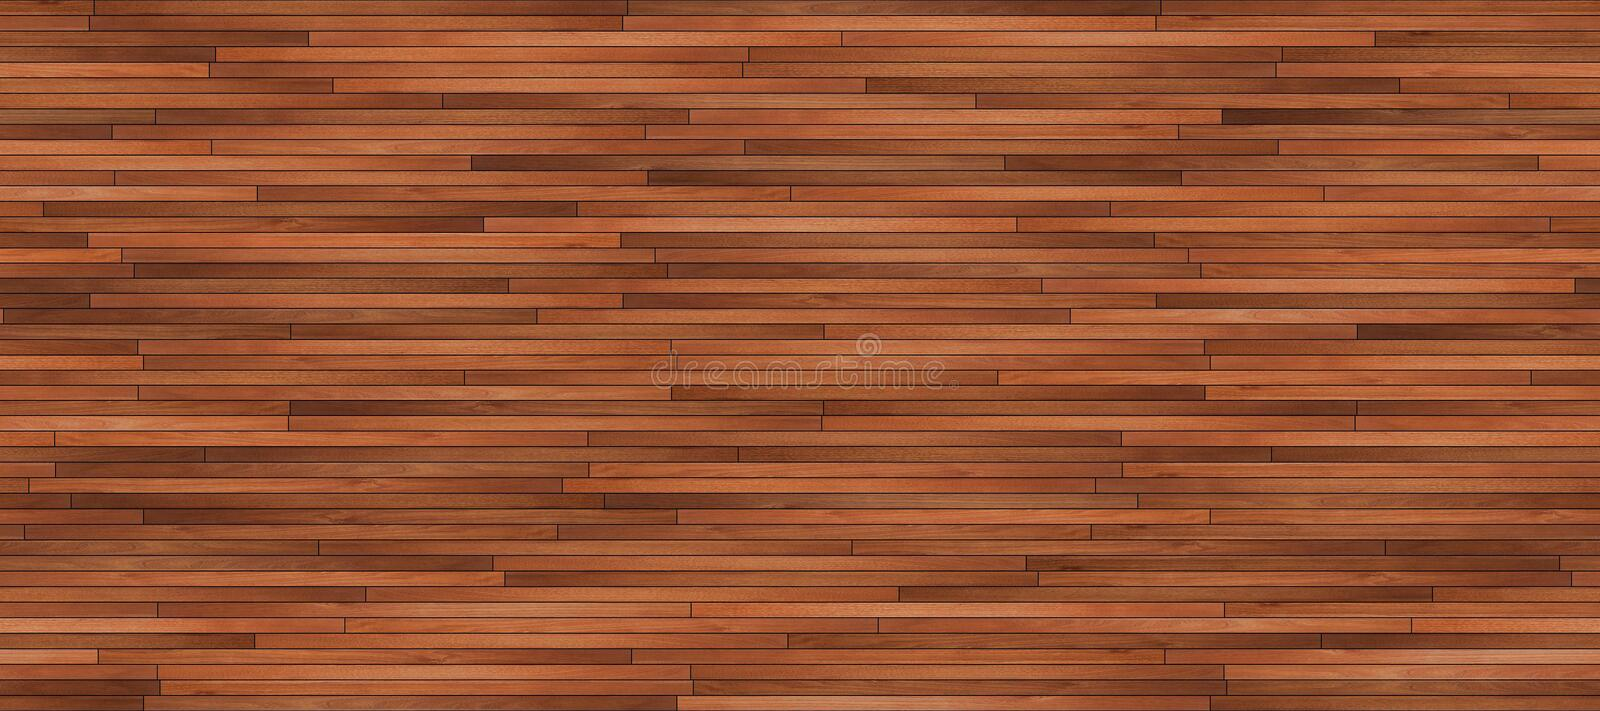 Wood Siding Seamless Texture Stock Image - Image of ...